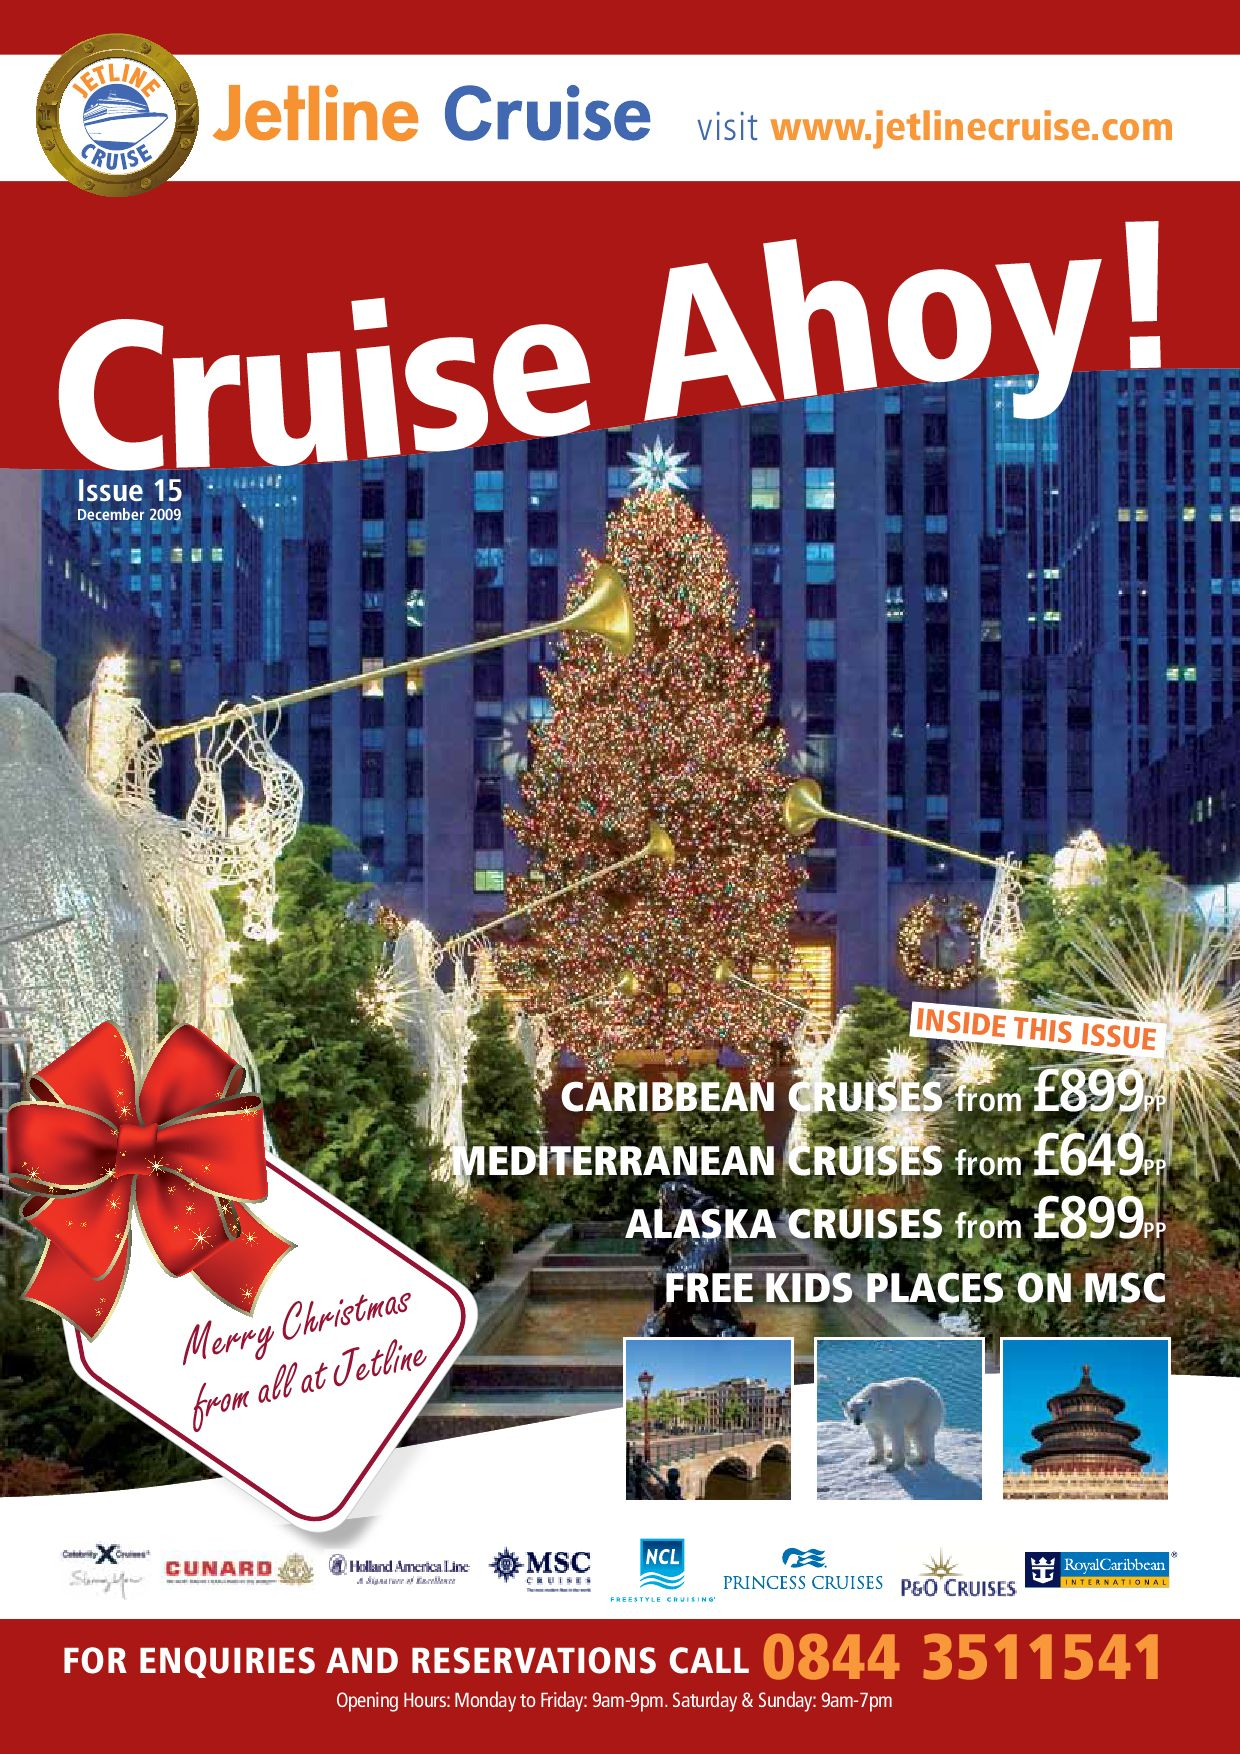 Jetline Cruise Cruise Ahoy December Edition by Paul Frost issuu